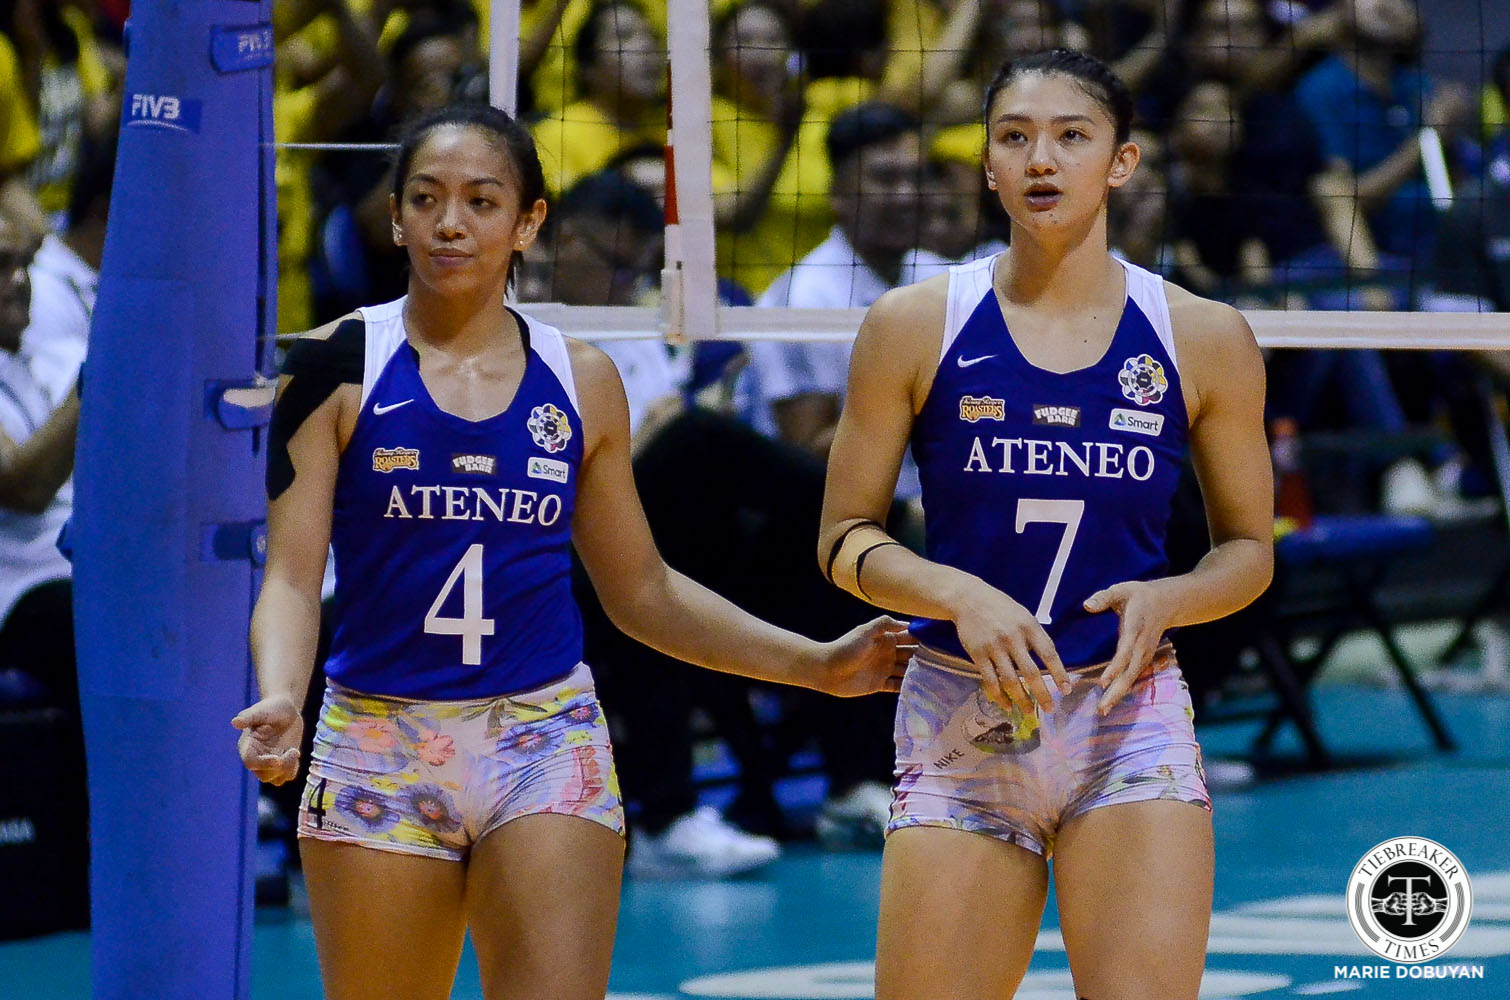 Tiebreaker Times Ateneo Lady Eagles mum, but Oliver Almadro remains positive ADMU News UAAP Volleyball  UAAP Season 81 Women's Volleyball UAAP Season 81 Oliver Almadro Ateneo Women's Volleyball